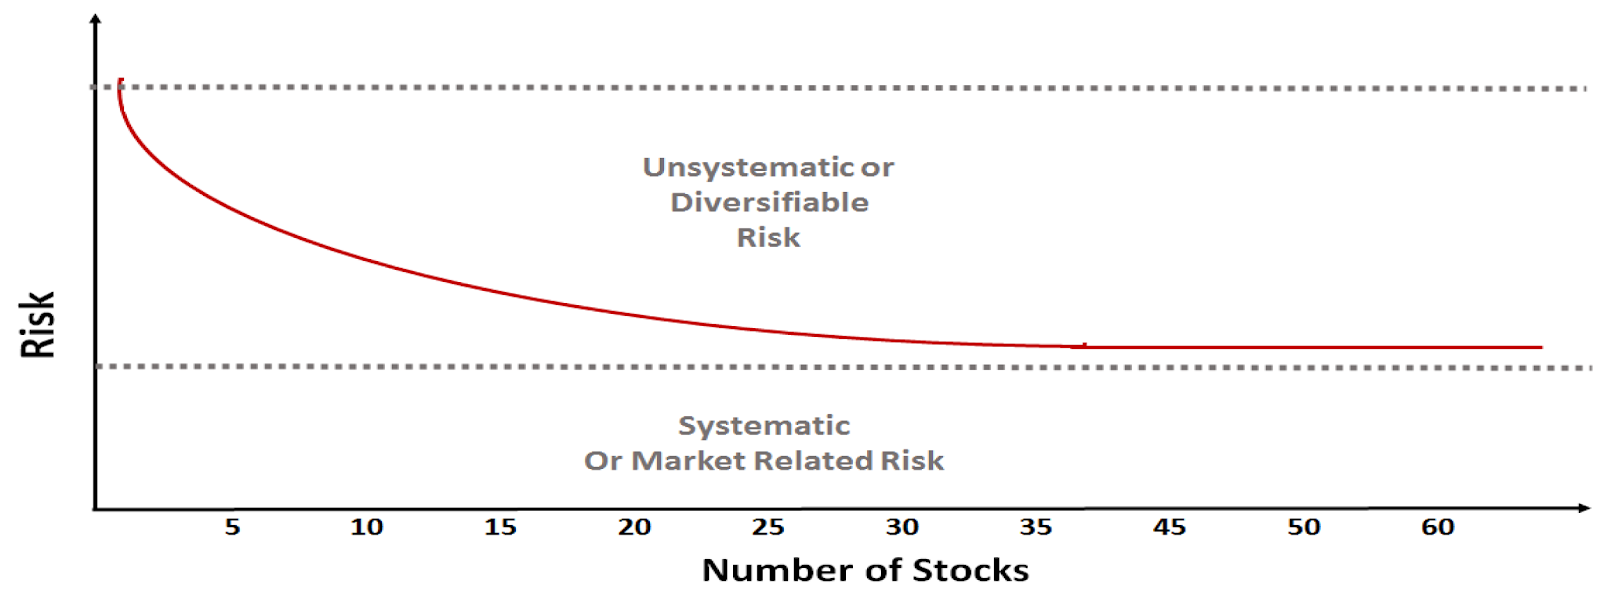 Higher number of stocks in a portfolio does not mean lowering of risk. However it does lead to lowering of returns in most cases